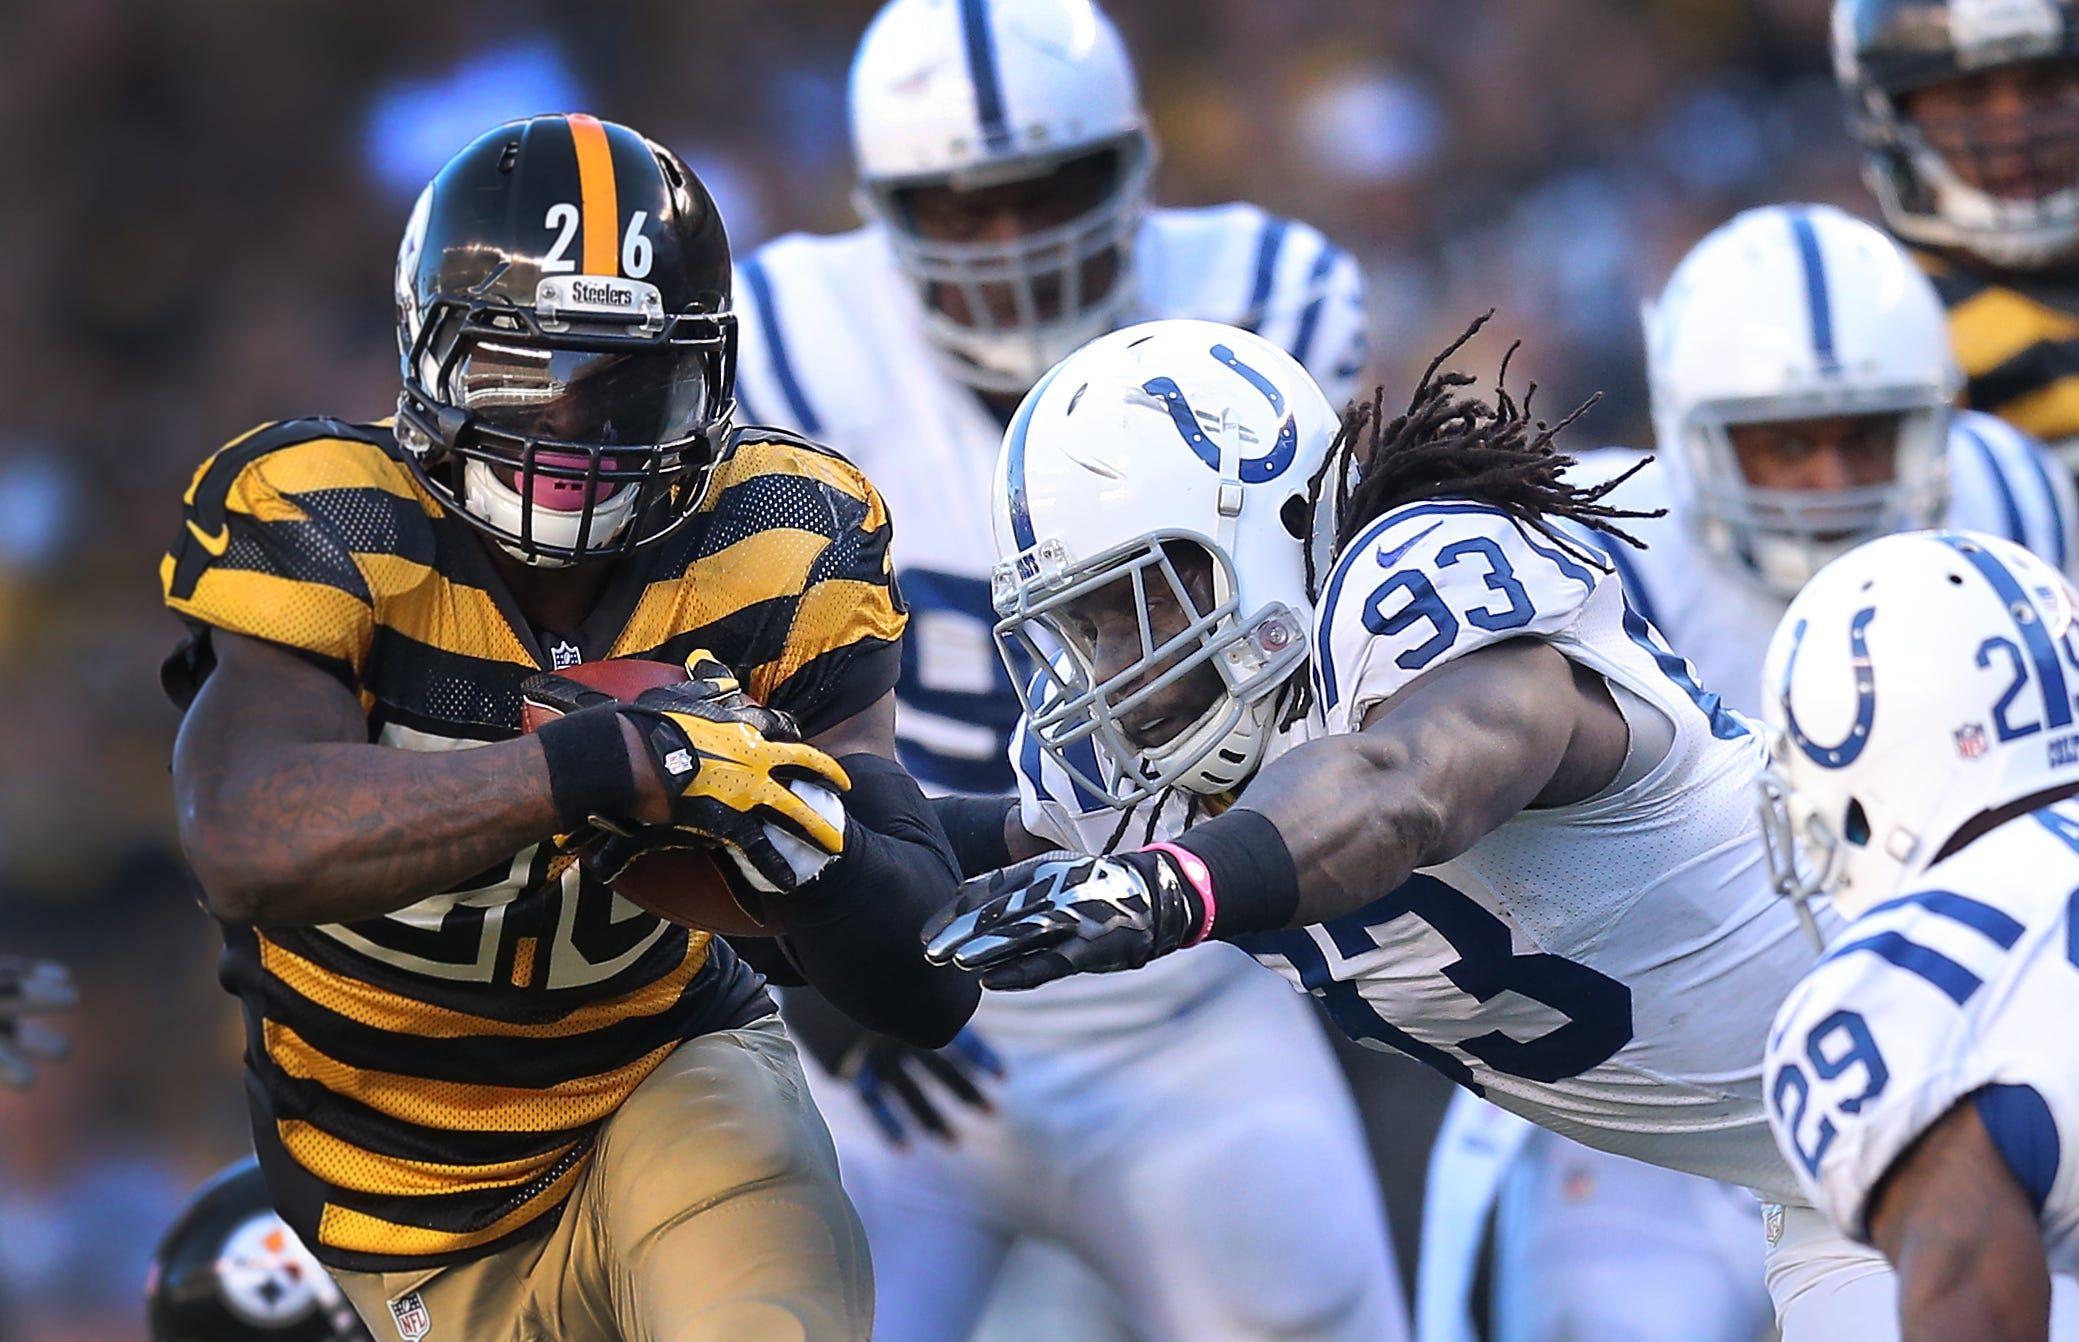 Reggie Wayne on Pittsburgh RB Bell: 'I'll pick him up from the airport'